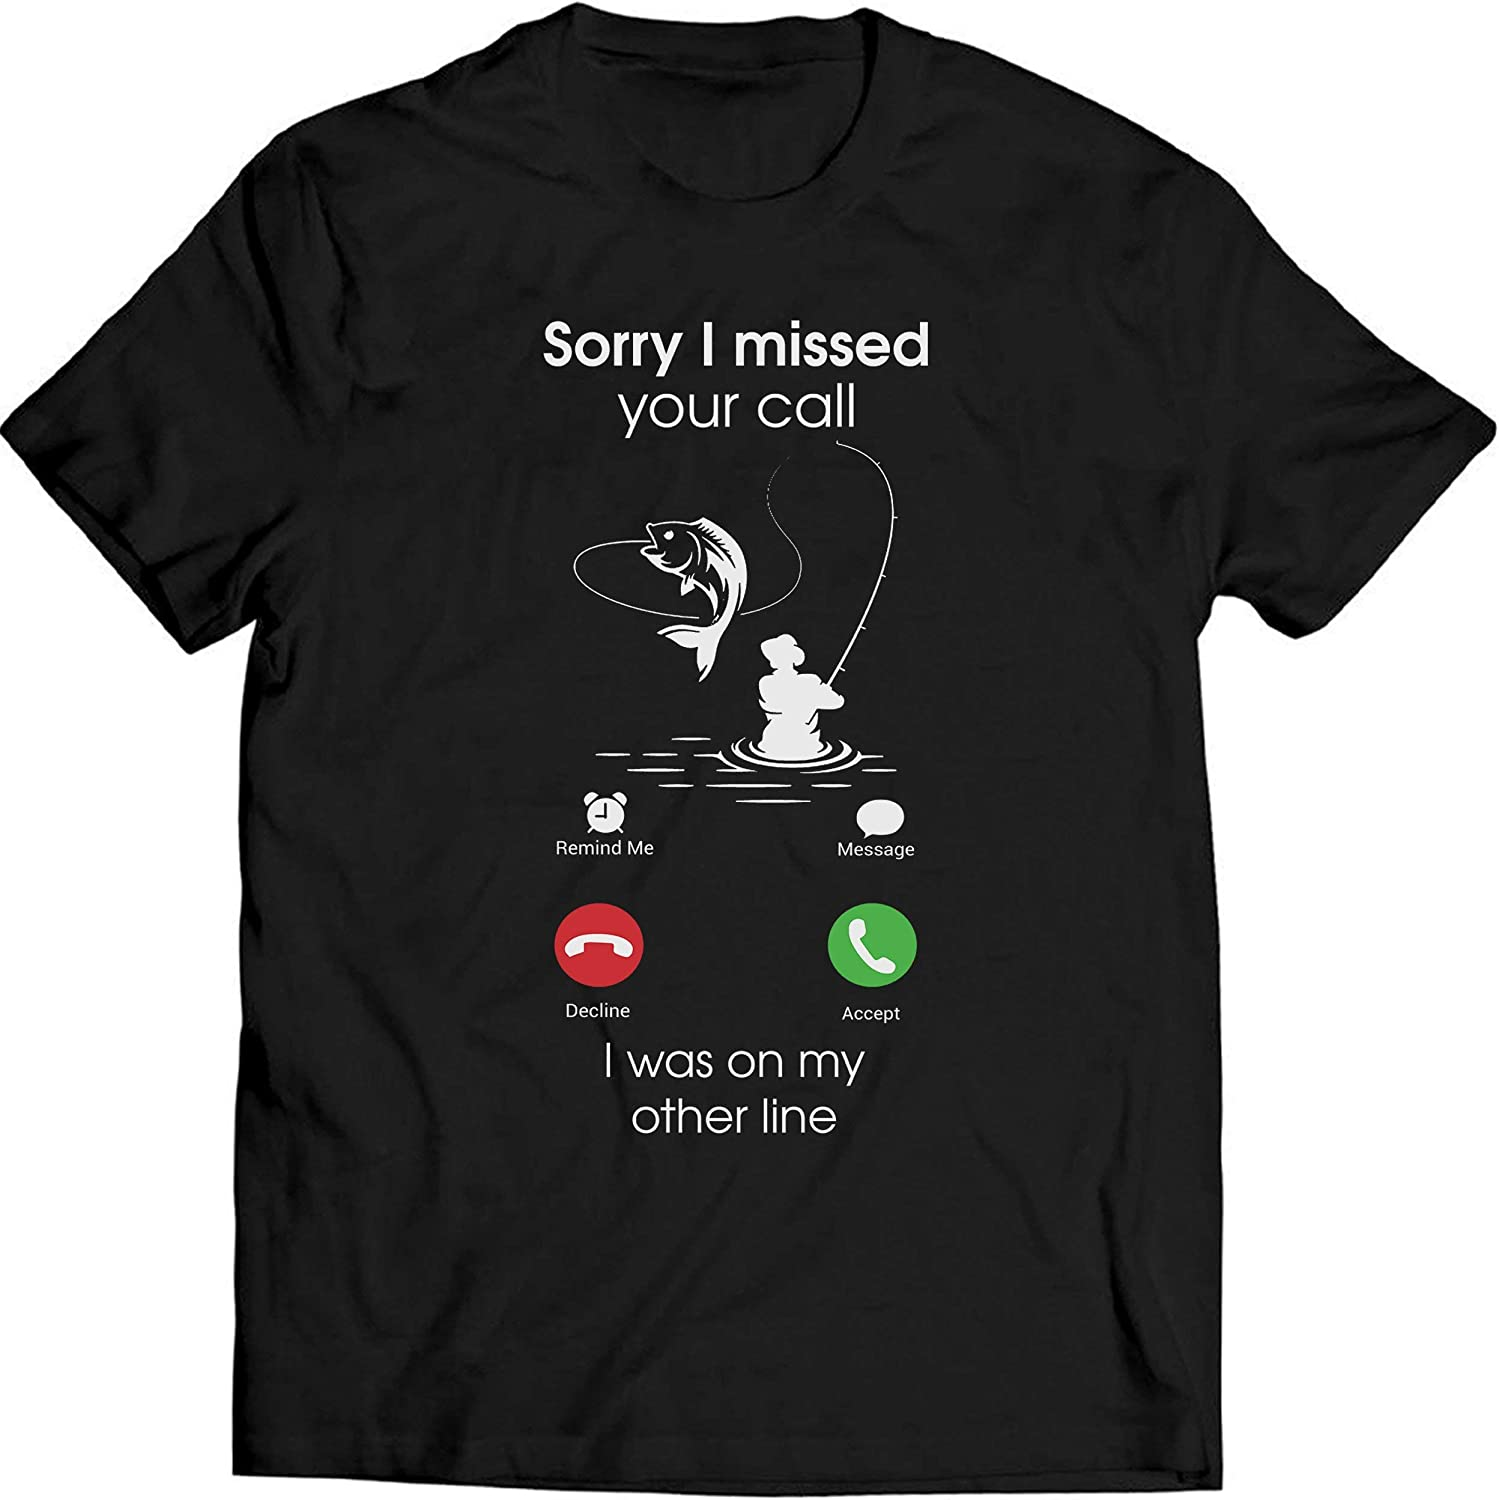 Sorry I Missed Your Call Fishing Funny Men Women T Shirt Cotton XS-3XL Black